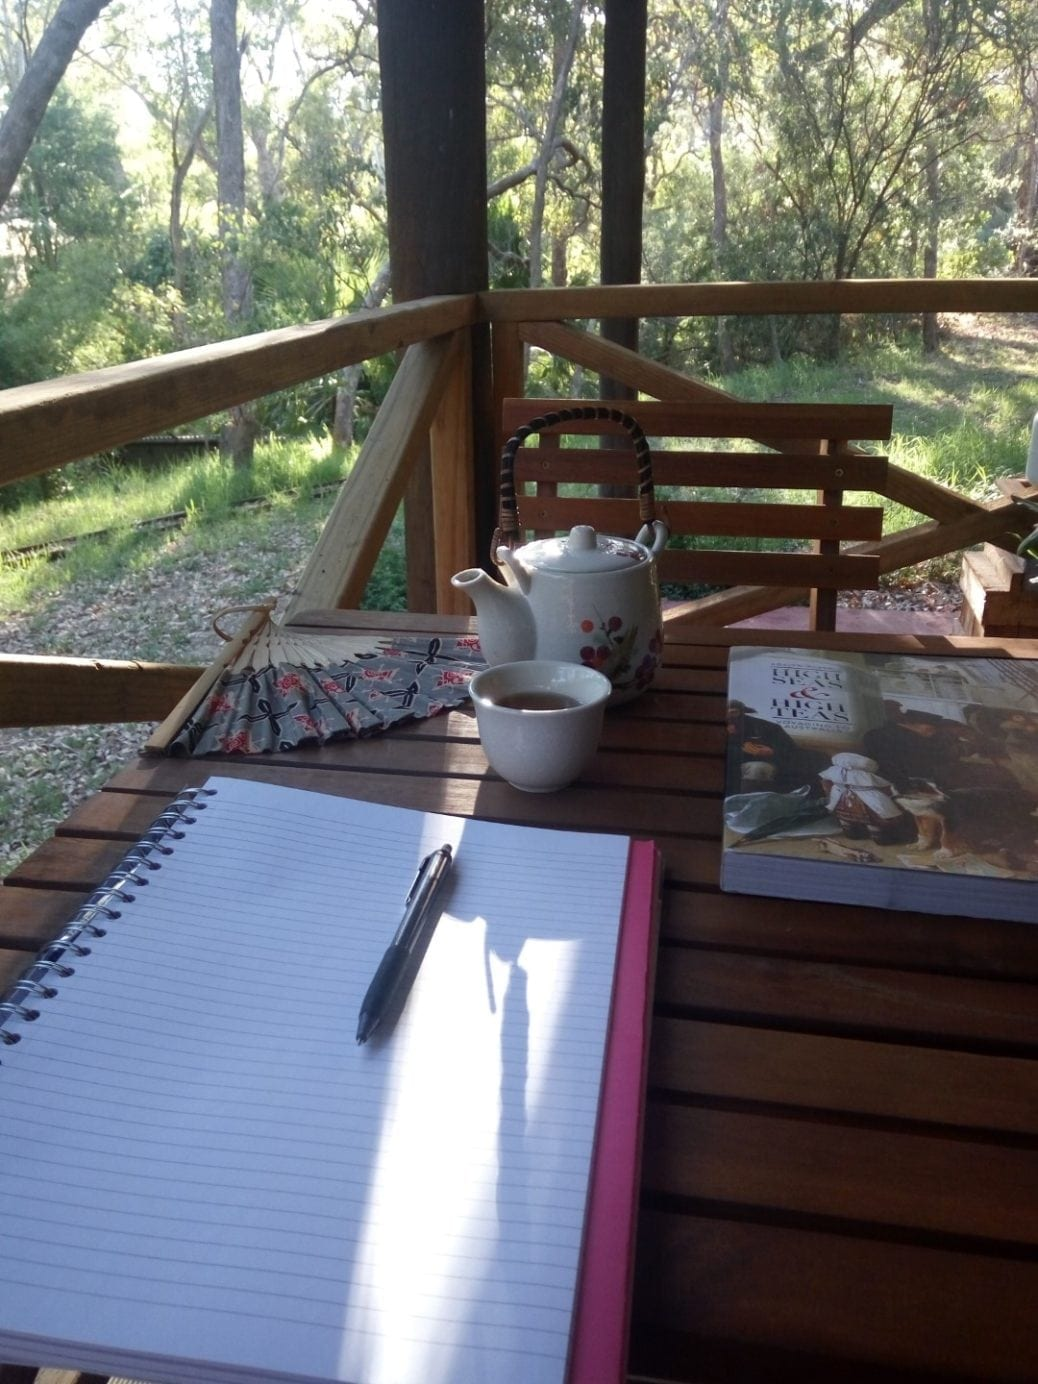 Kookaburra Creek Carriage Retreat